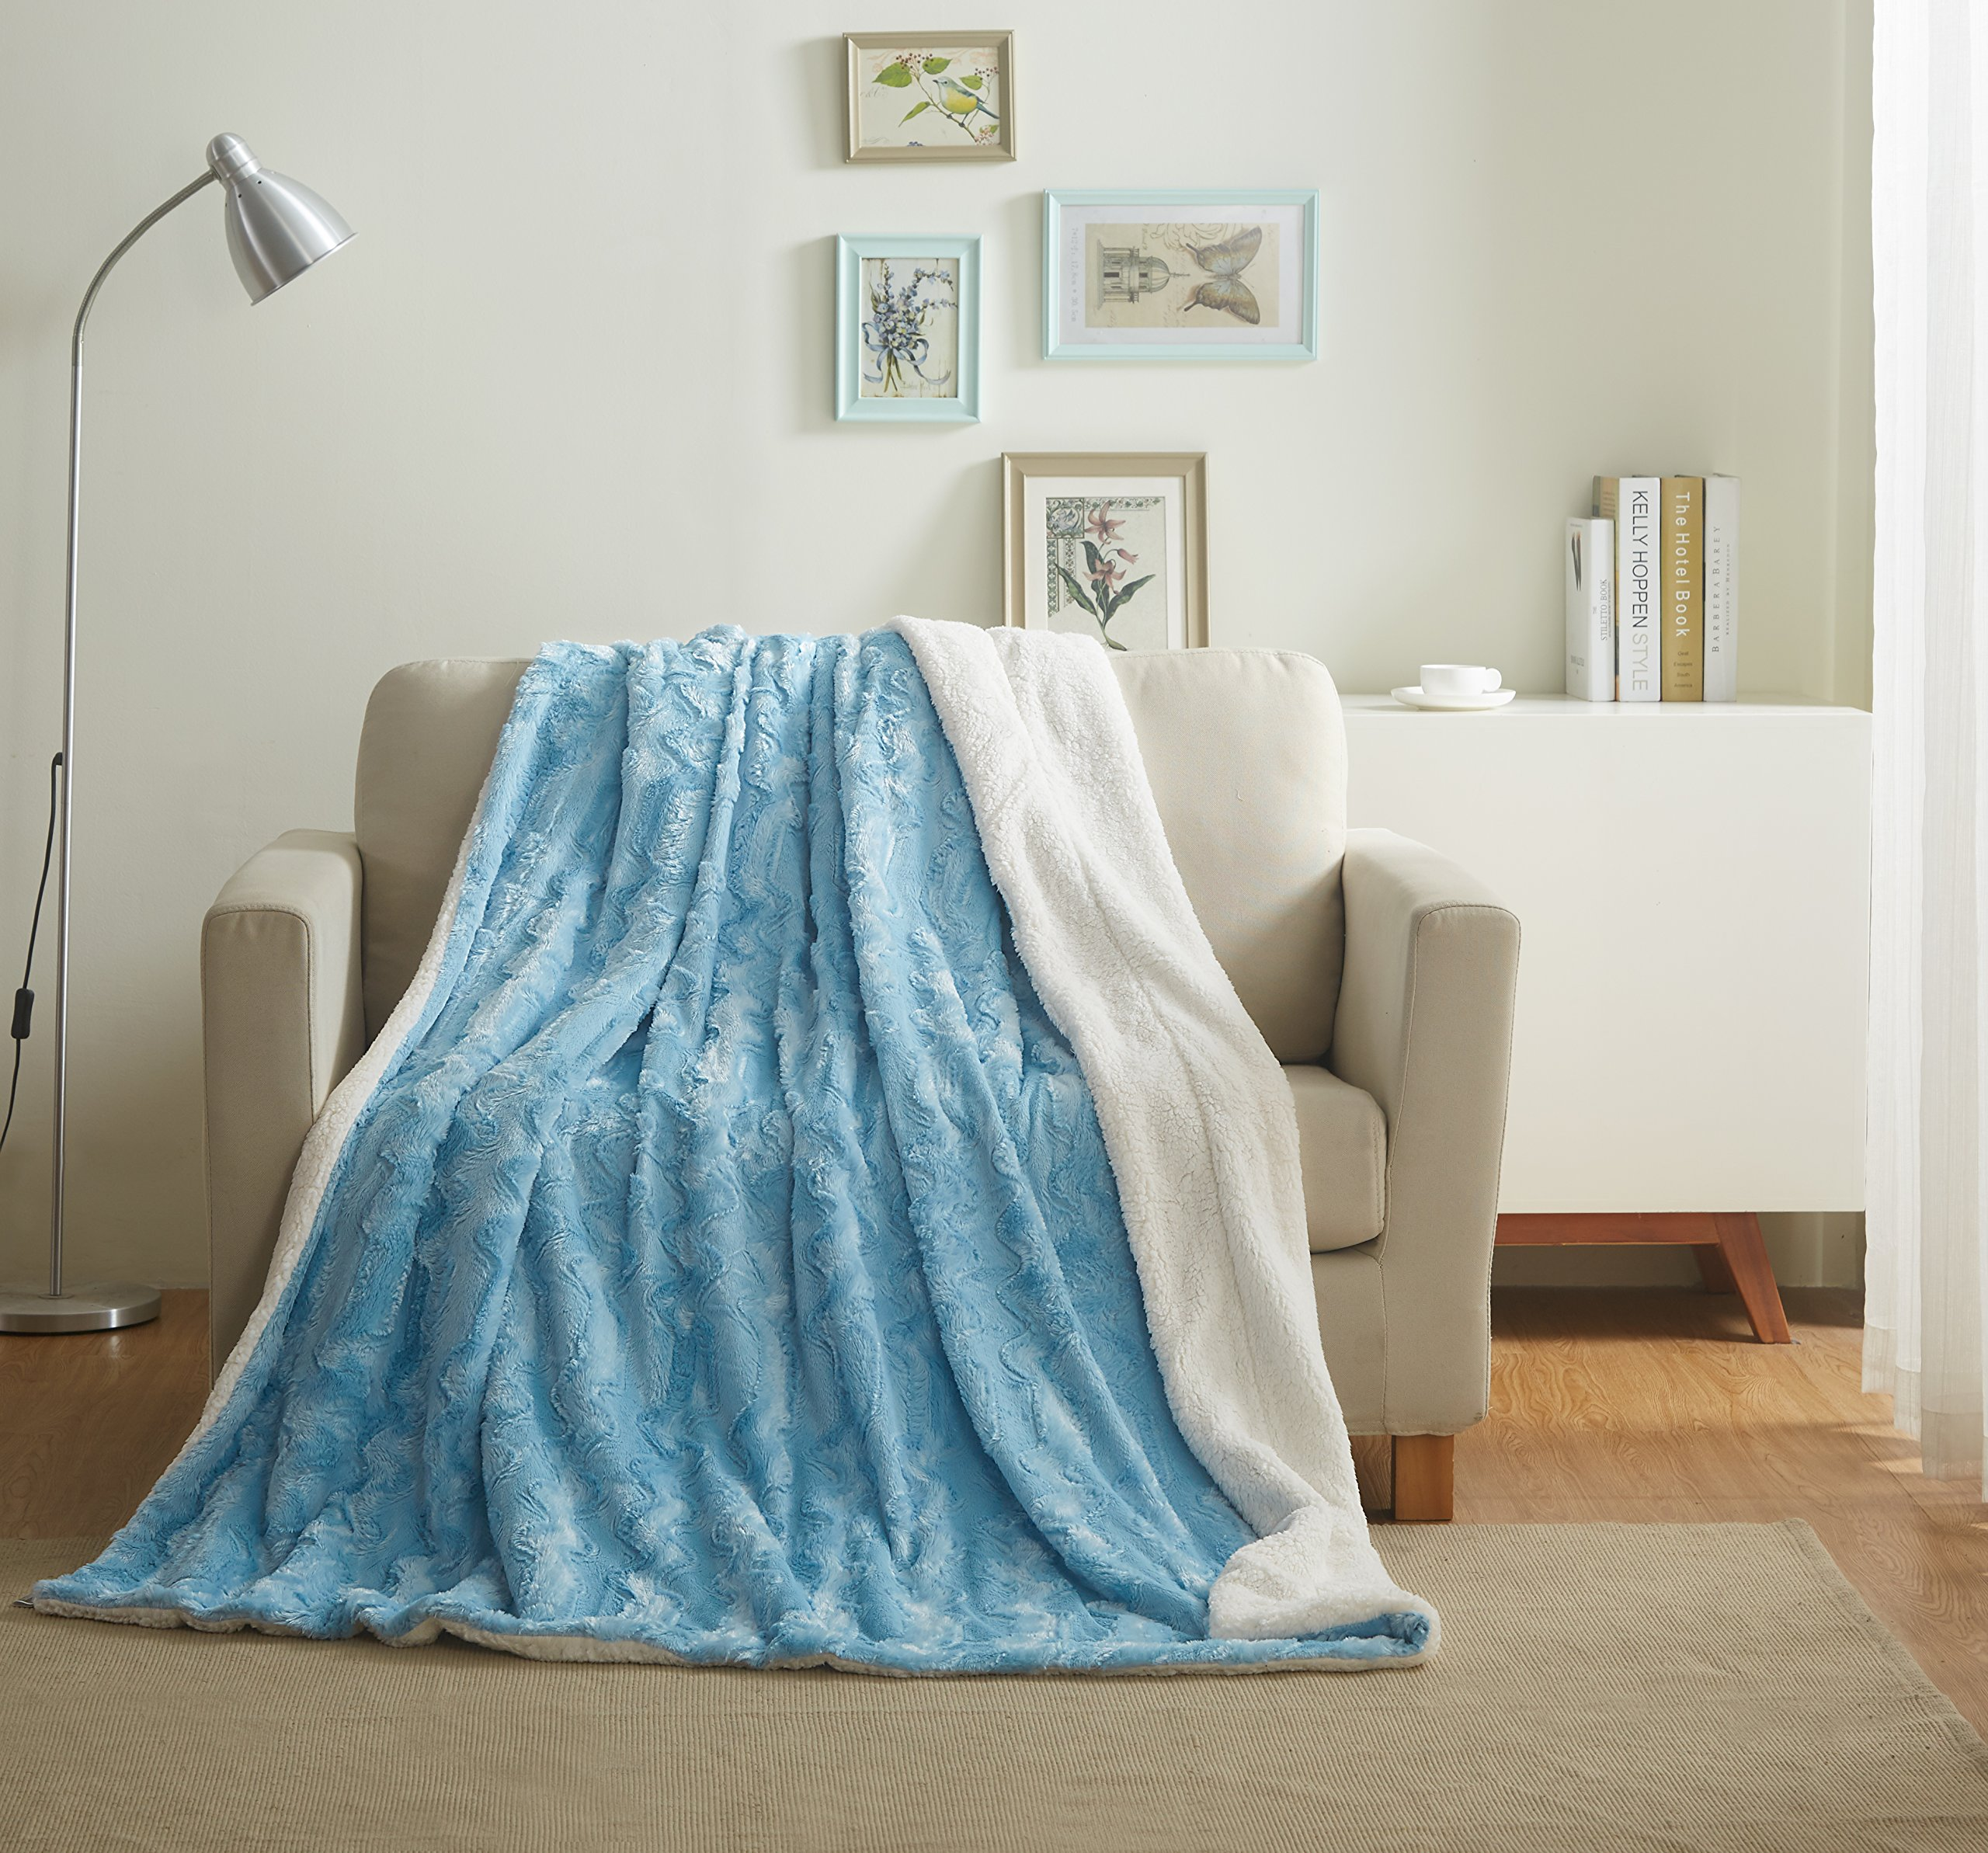 Tache Faux Fur Throw Blanket - Super Soft Light Sky Baby Blue Pile Backed by Warm White Sherpa - 90x90